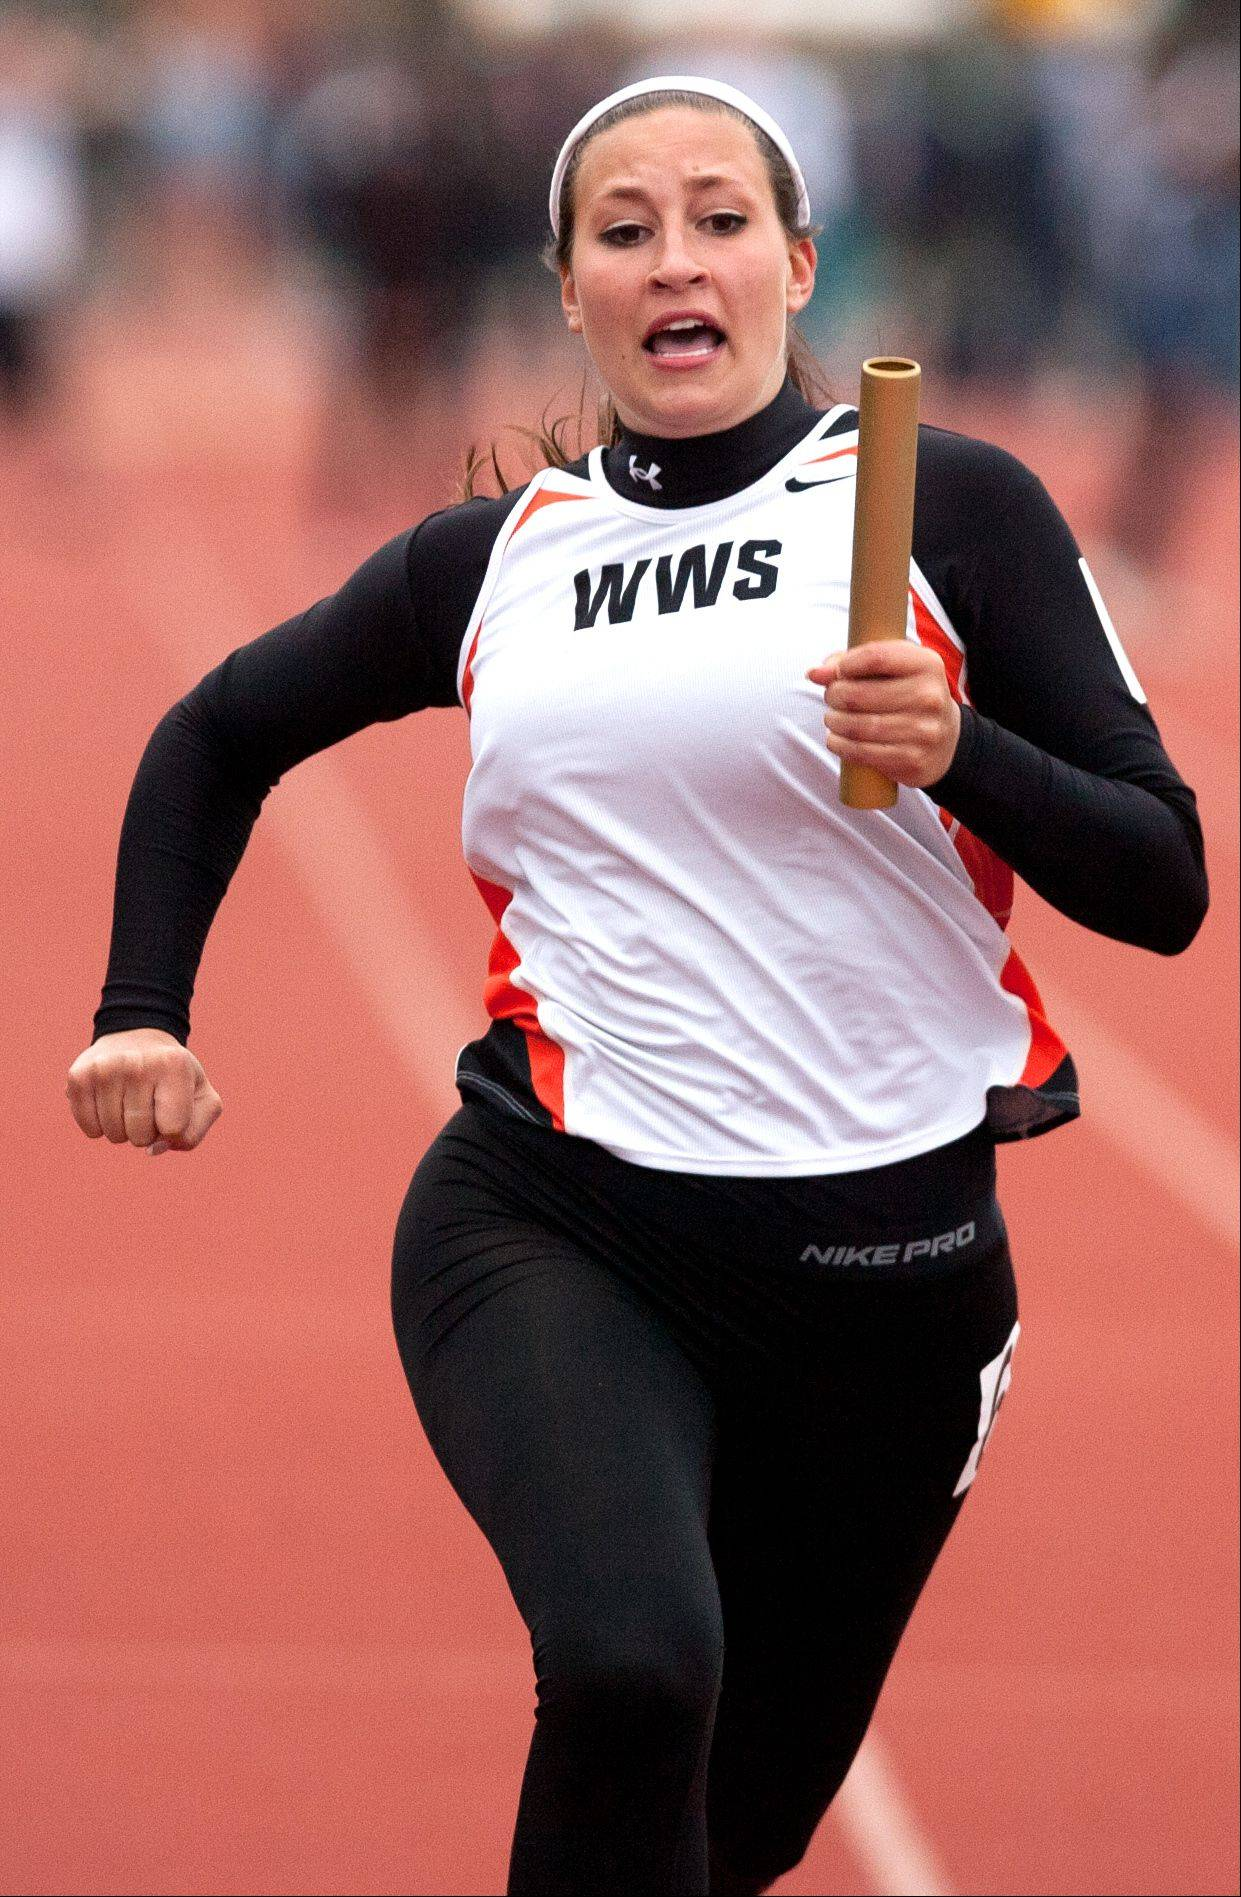 Wheaton Warrenville South's Jenny Fiola sprints to a 4 x 100 Meter Relay second place finish during the York Girls Track and Field Sectional meet.